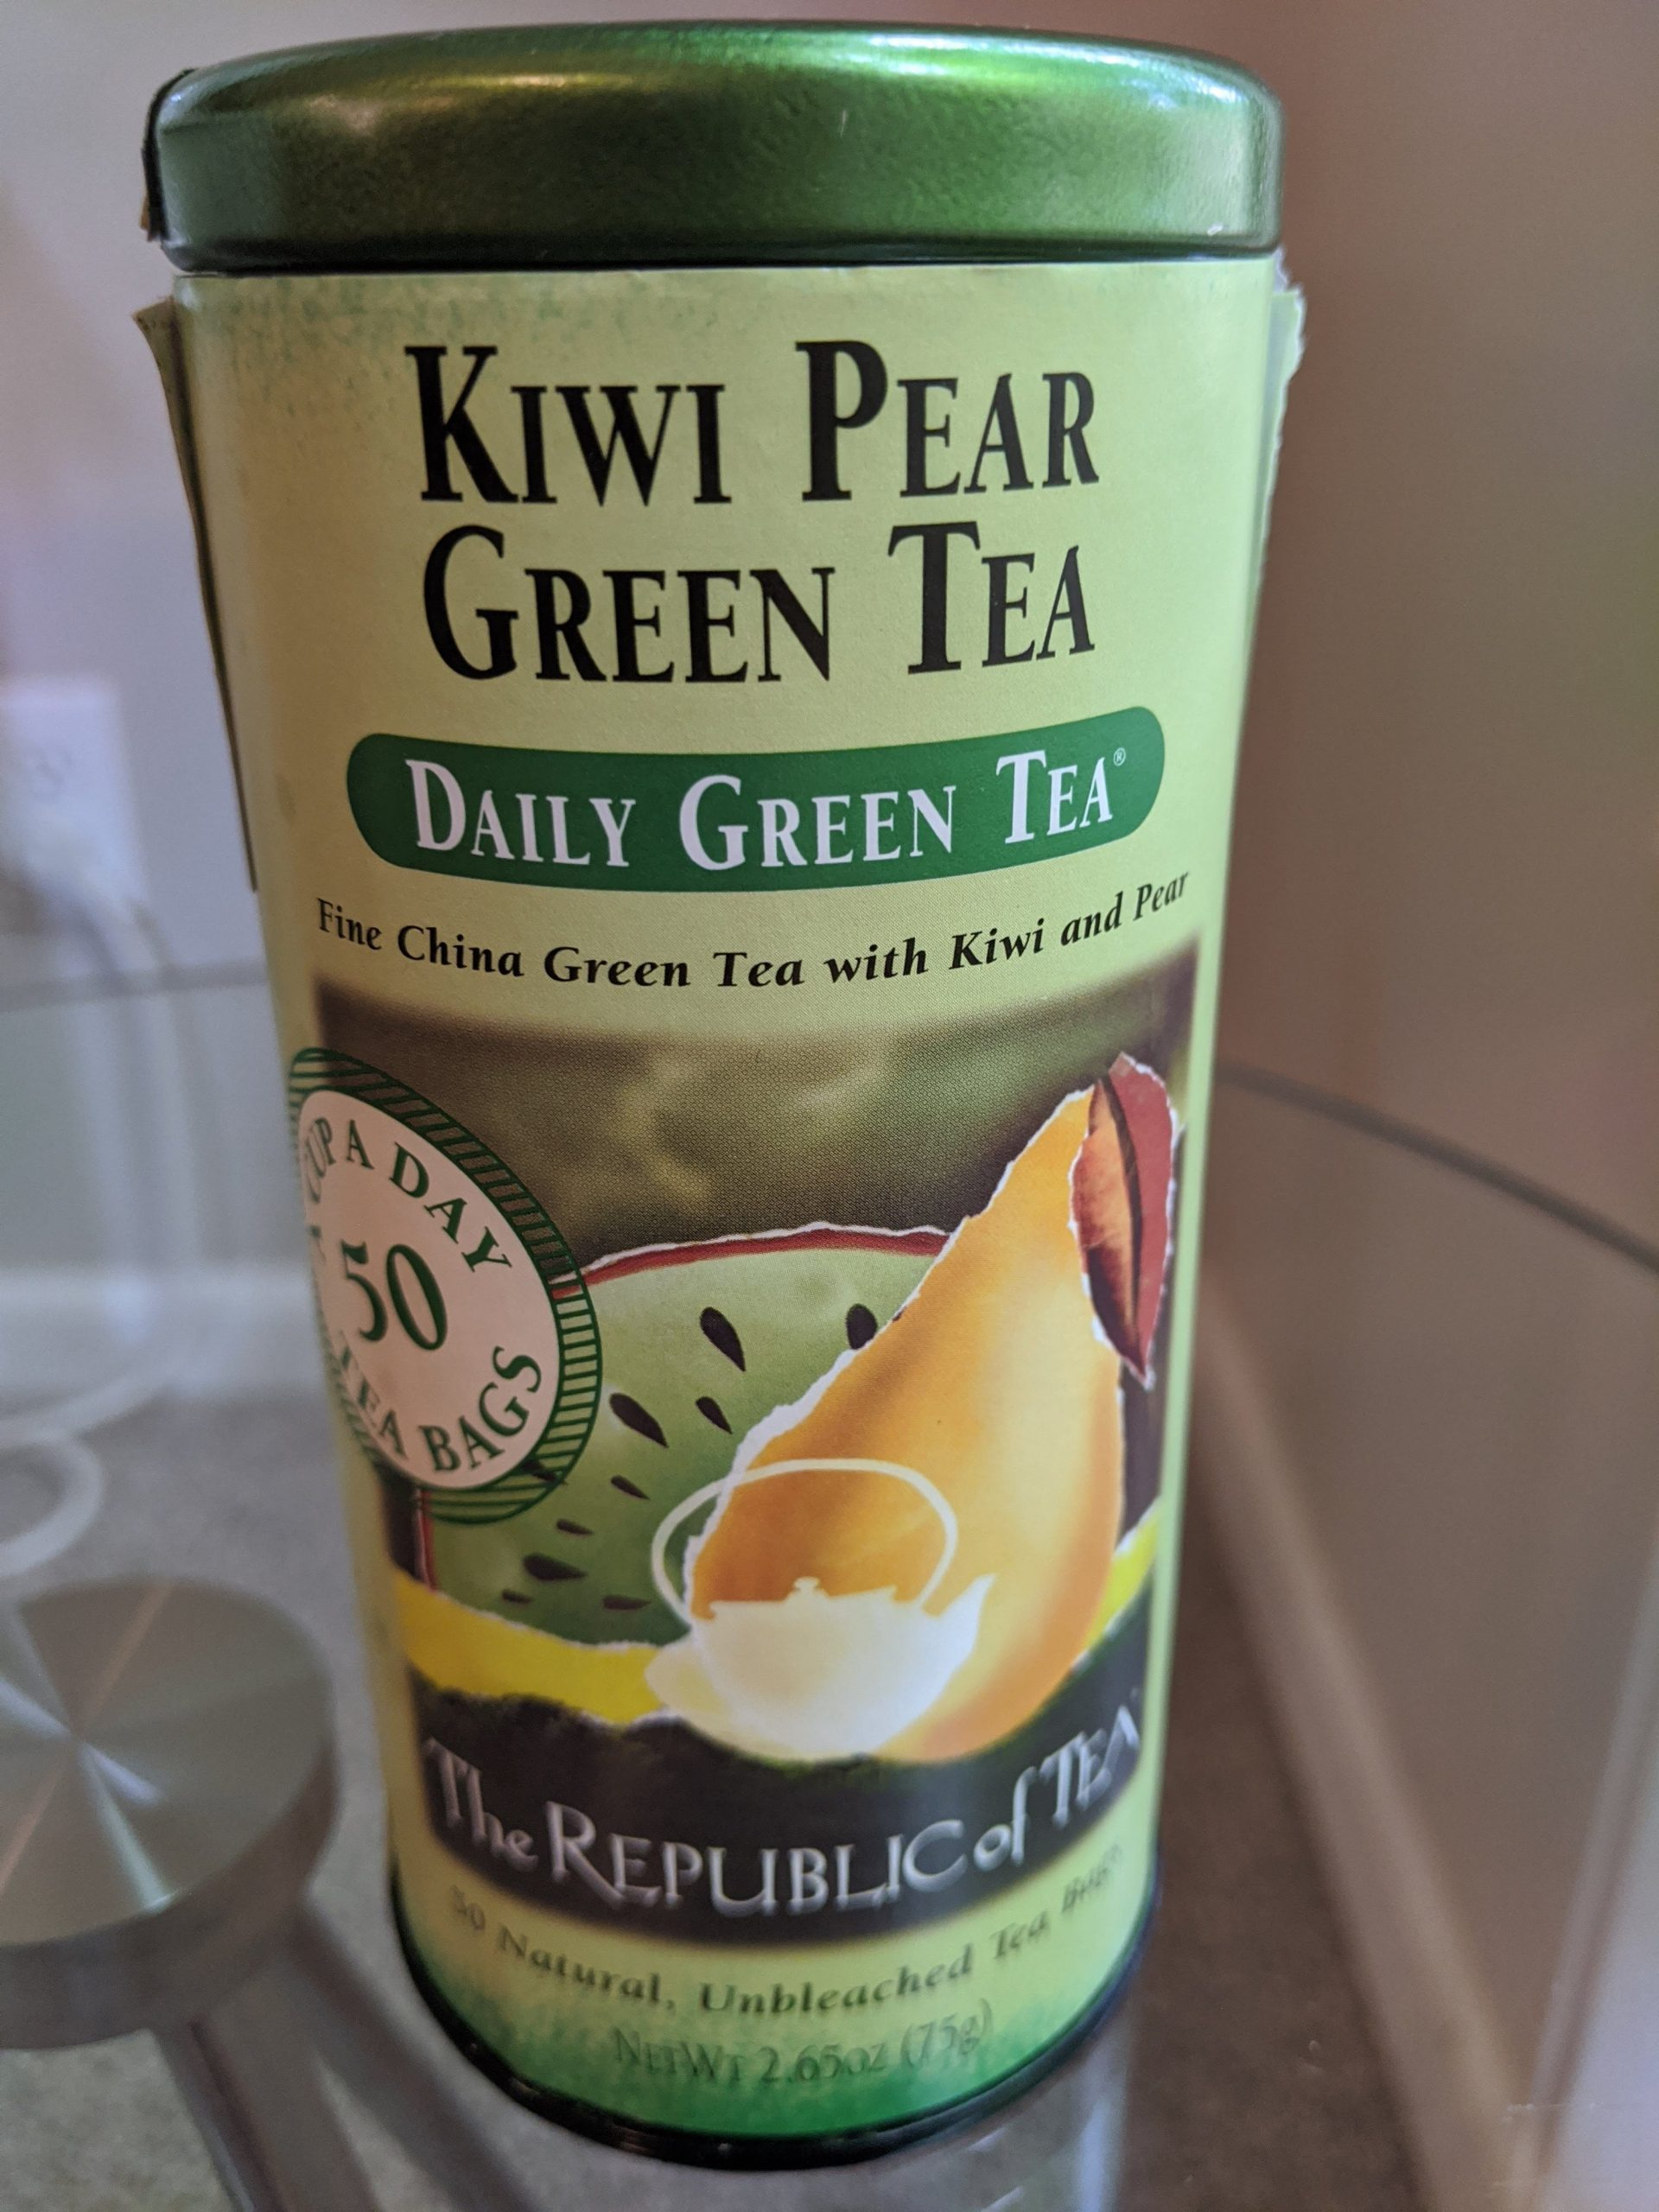 Kiwi Pear Green Tea